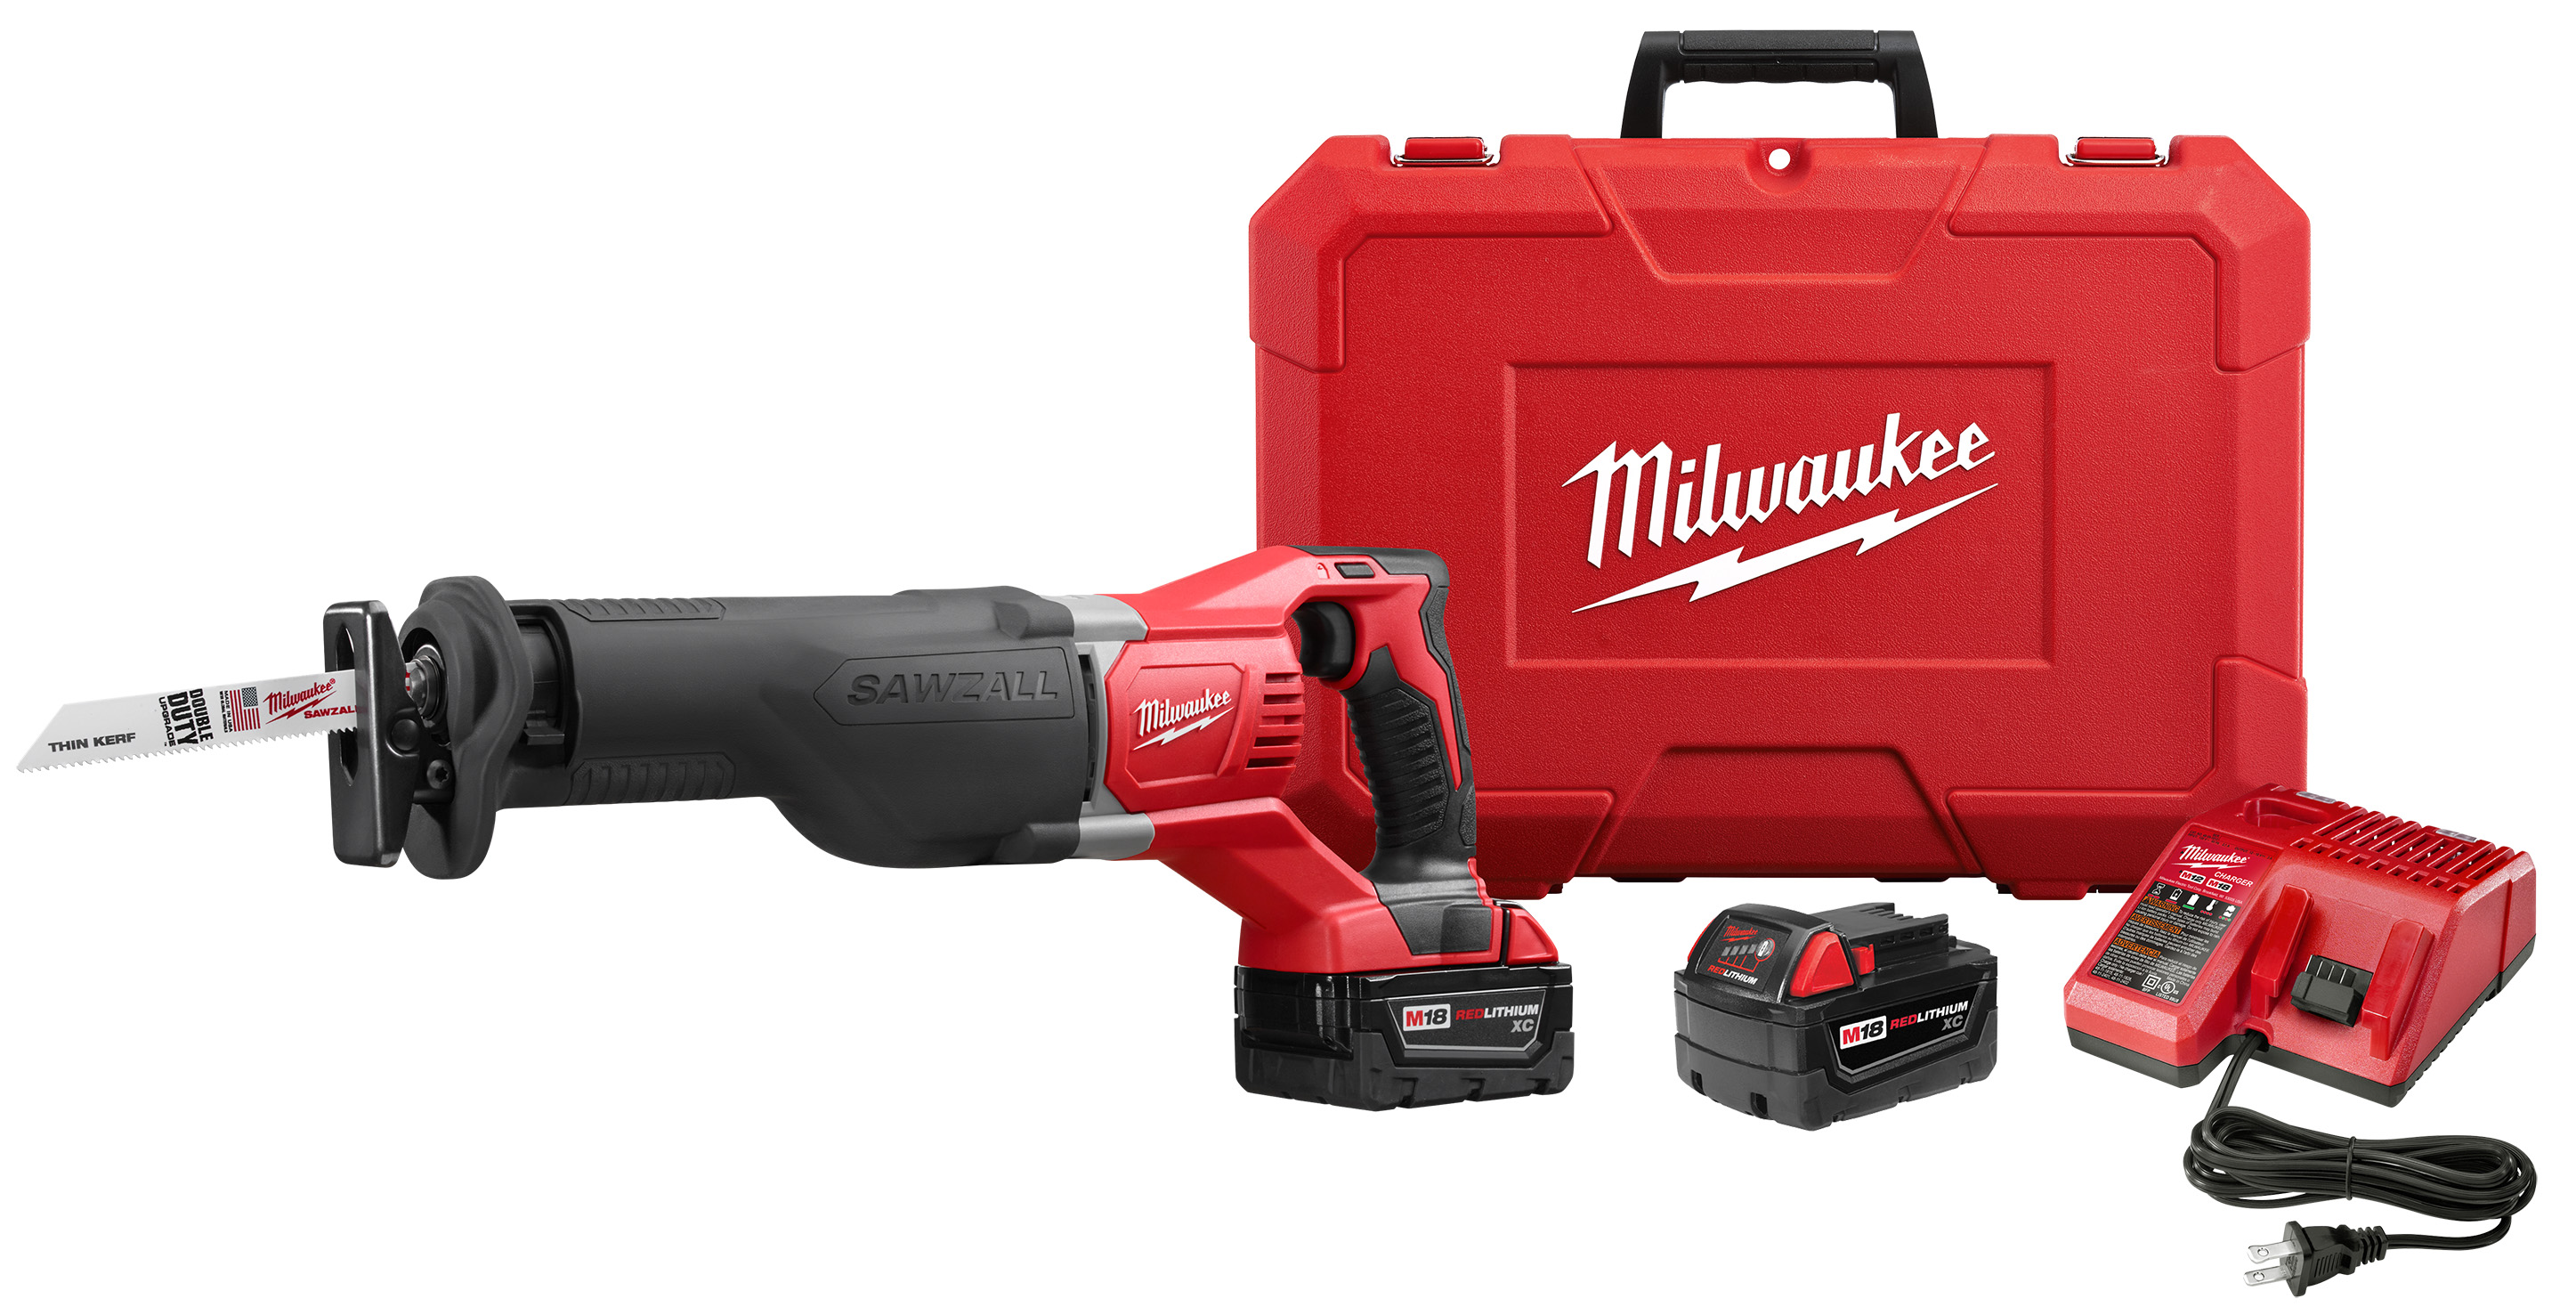 Milwaukee® M18™ SAWZALL™ 2621-21 Cordless Reciprocating Saw Kit, 1-1/8 in L Stroke, 3000 spm, In-Line Cut, 18 VDC, 19 in OAL